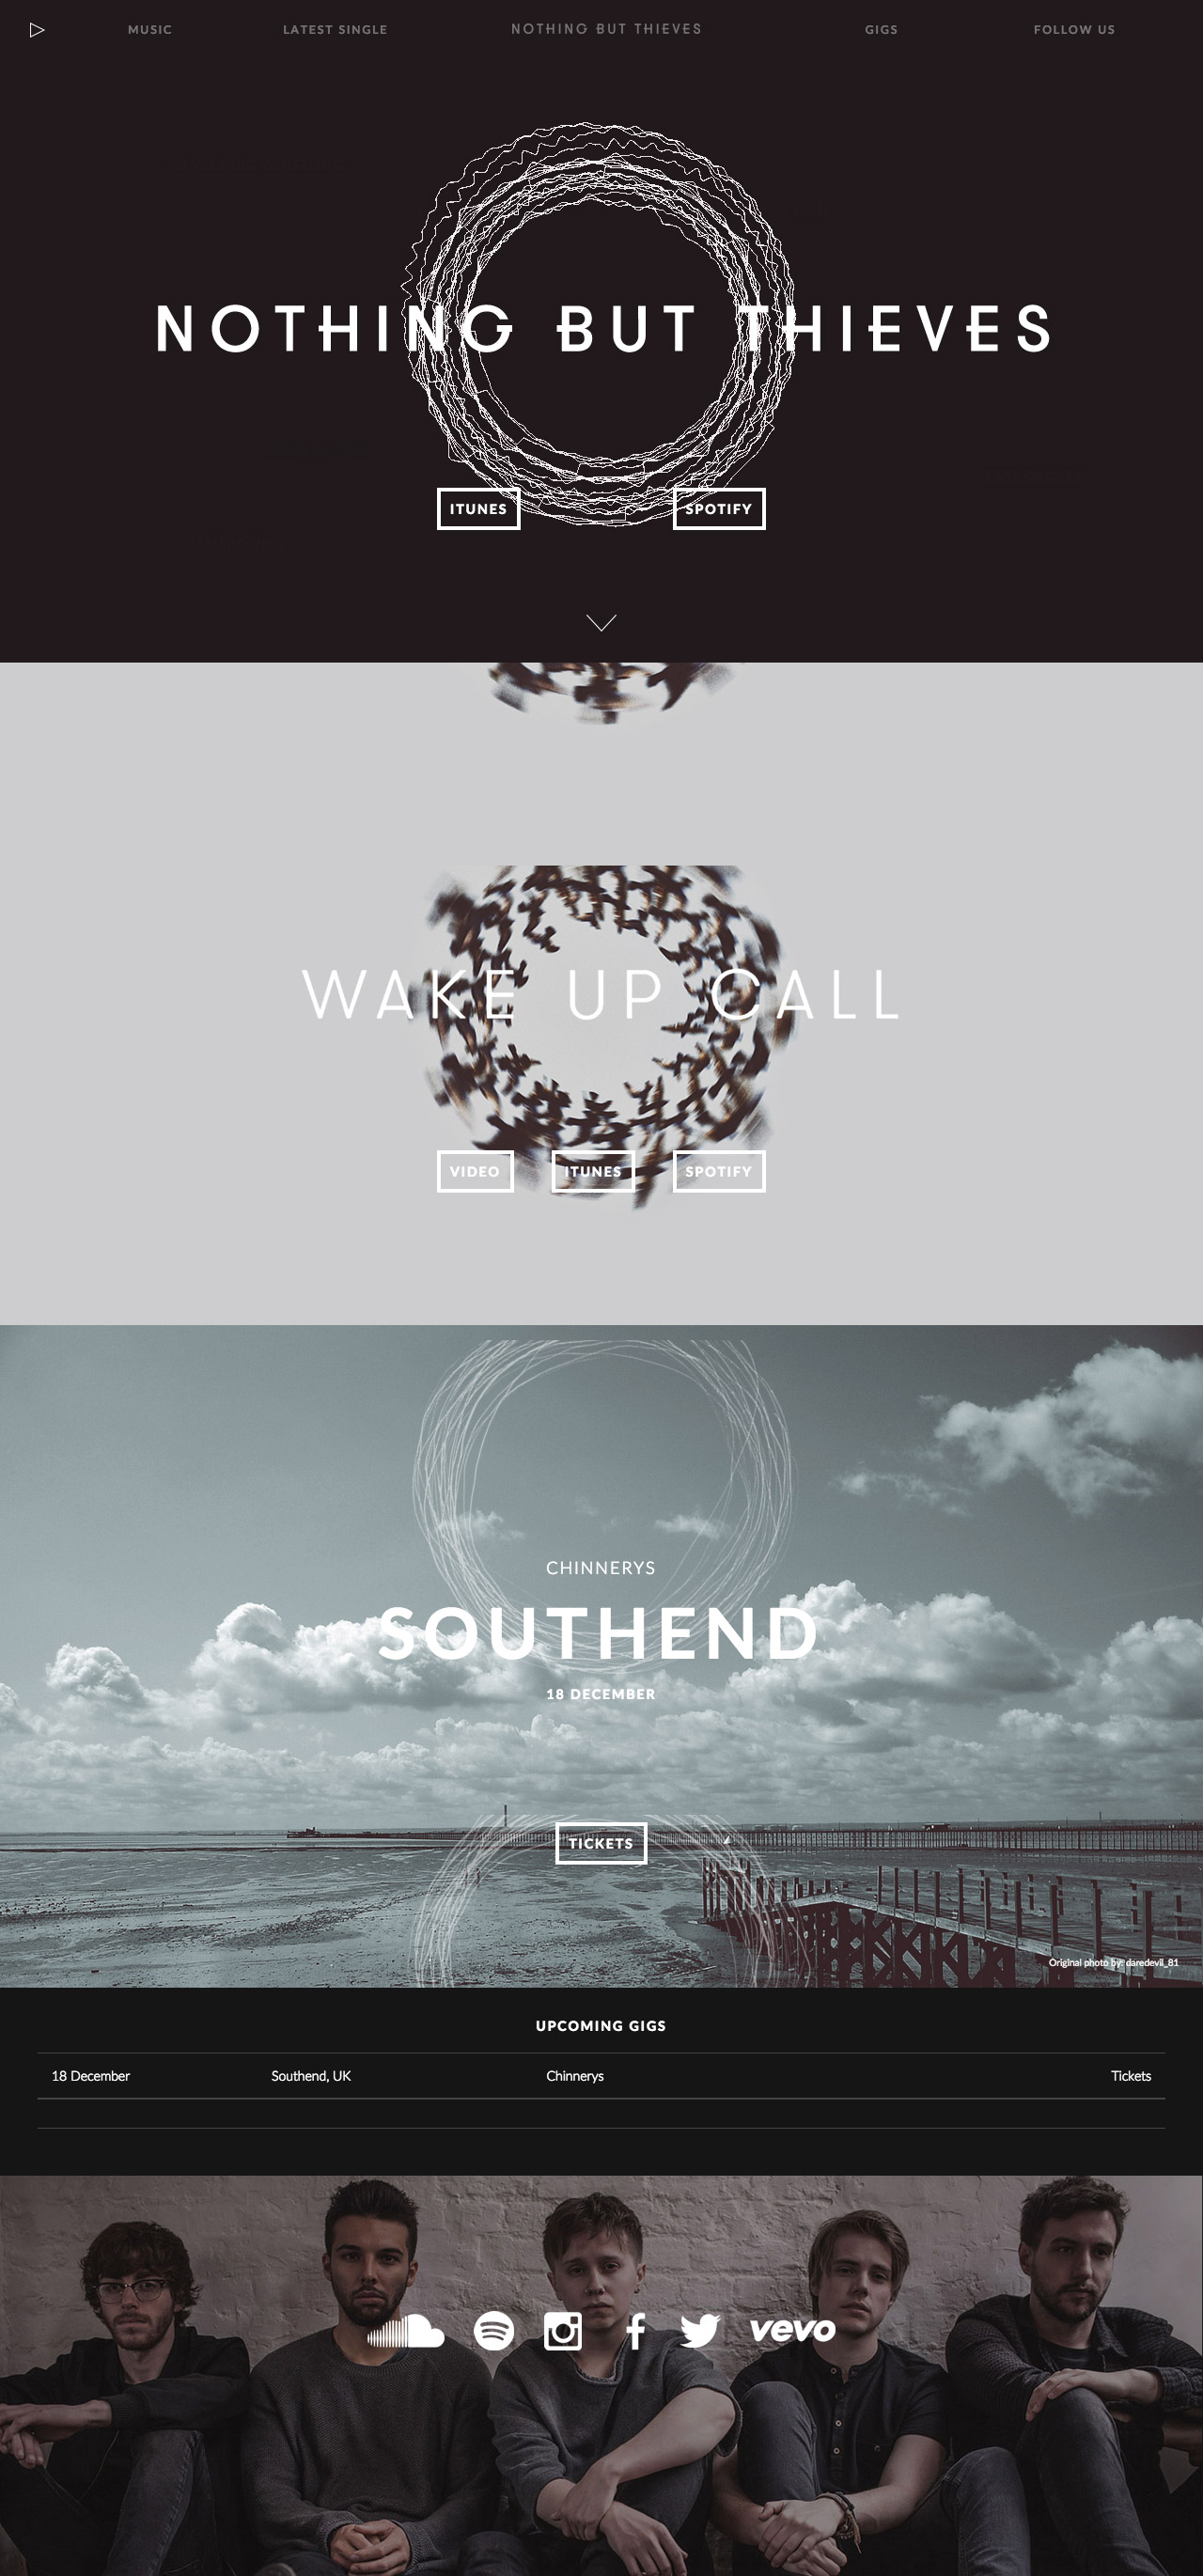 Iphone Wallpaper Pinterest Quotes Nothing But Thieves